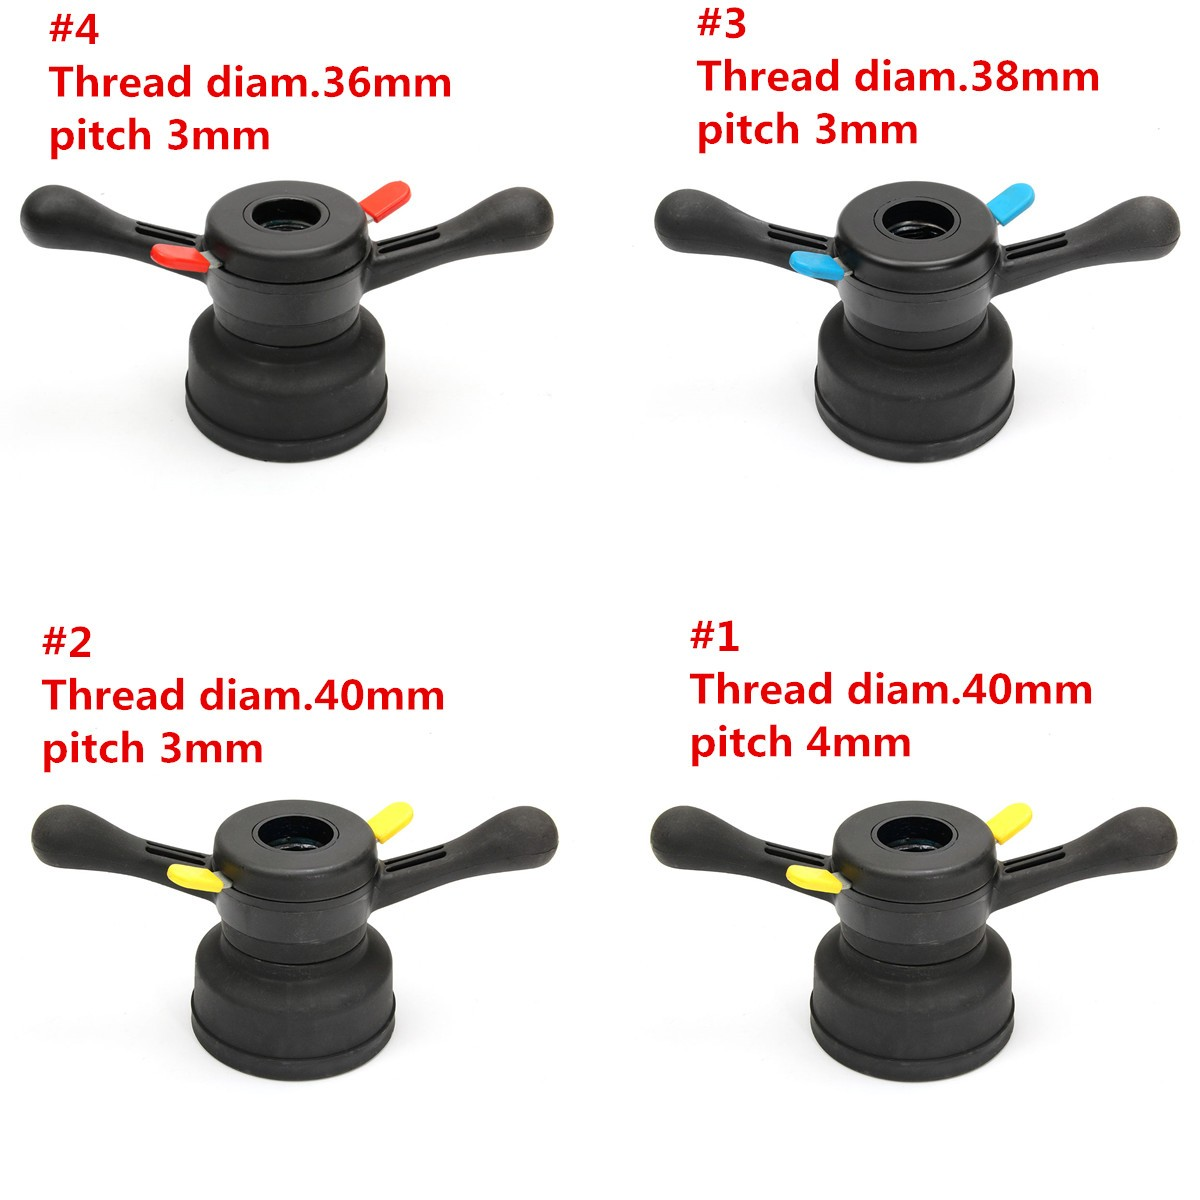 Wheel Balancer Tire Change Tool Quick Release Wing Nut /& Pressure Cup Hub Shaft Nut 40mm// 38mm// 36mm Wheel Balancer Thread Diameter 40mm, Pitch 4mm